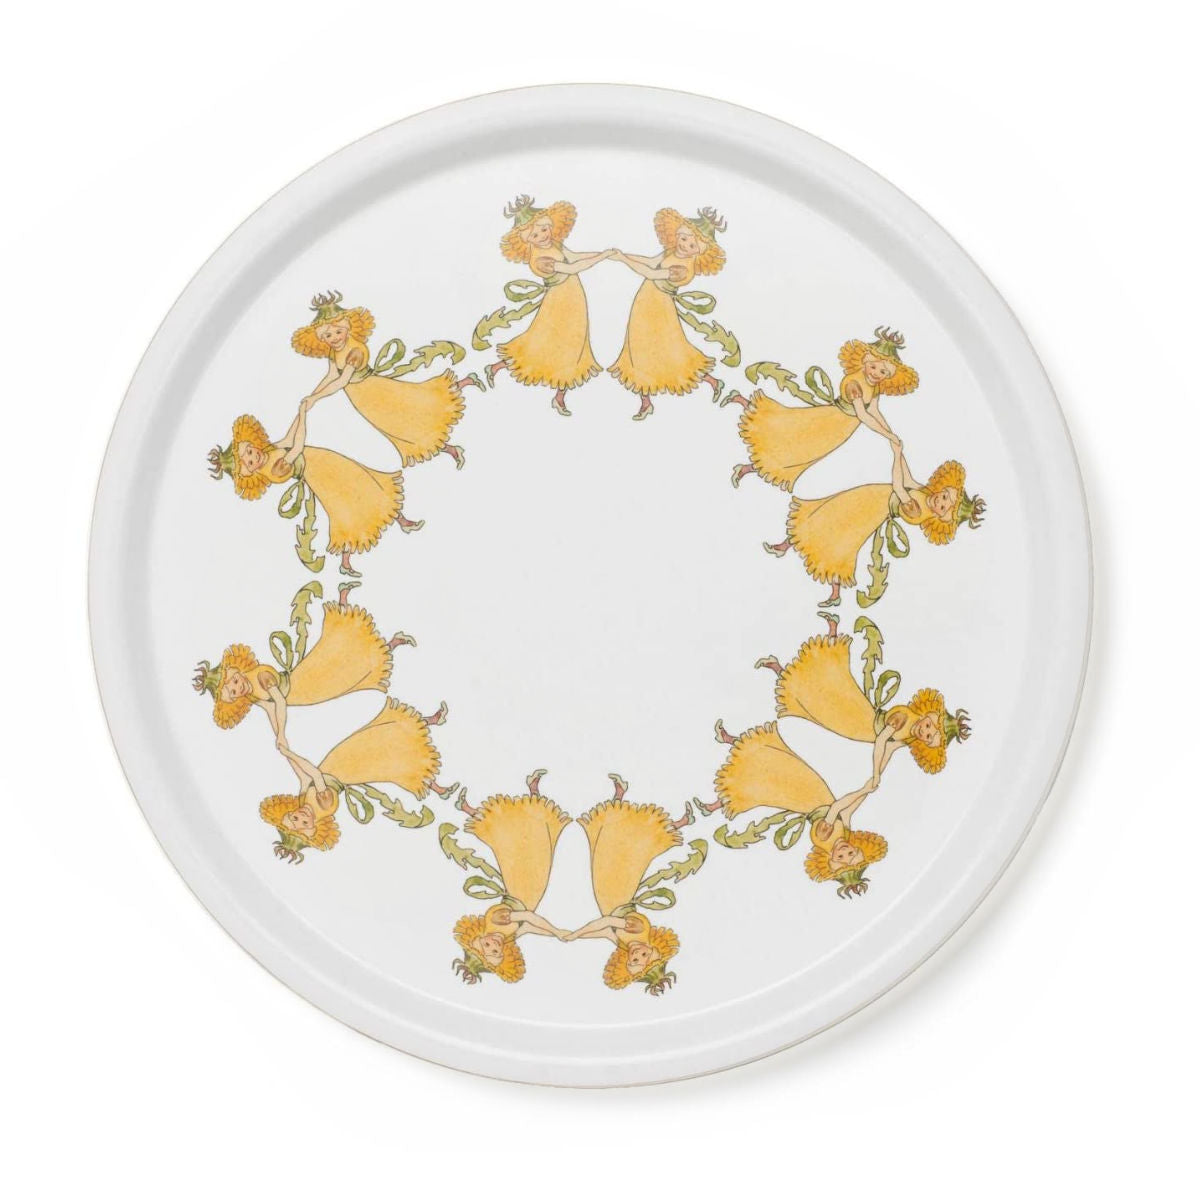 Design House Stockholm Elsa Beskow tray Ø35cm, flower girls